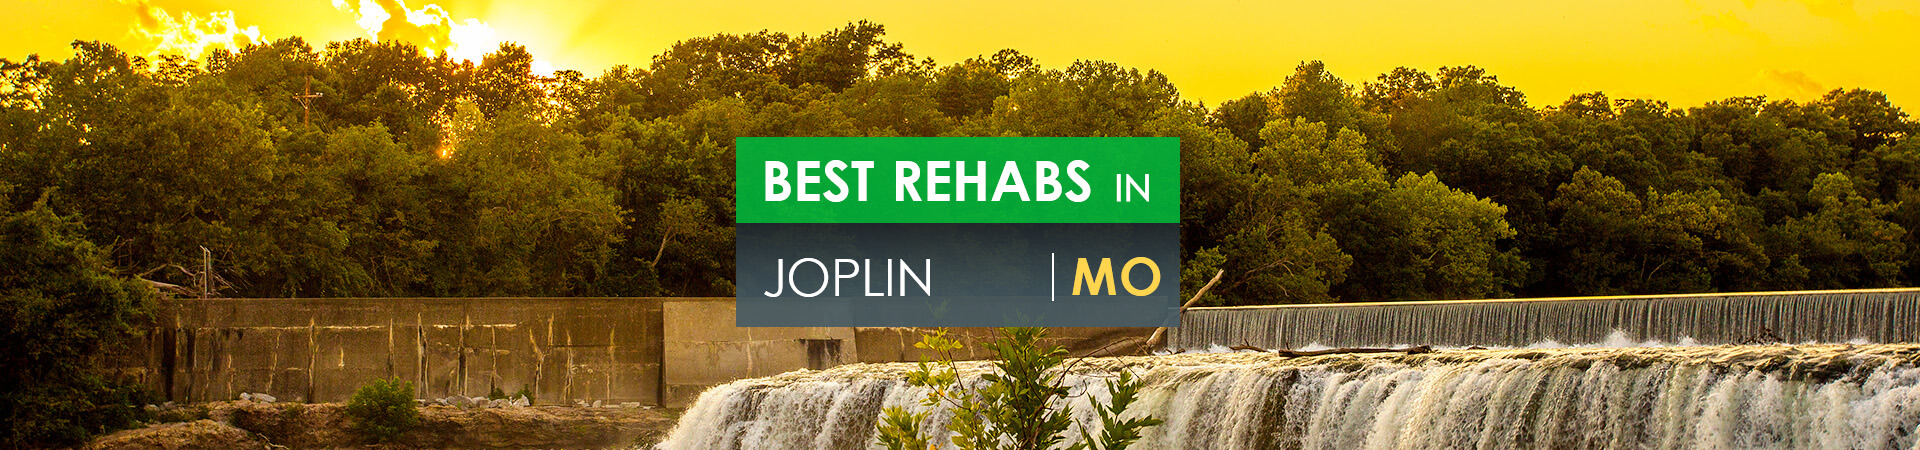 Best rehabs in Joplin, MO